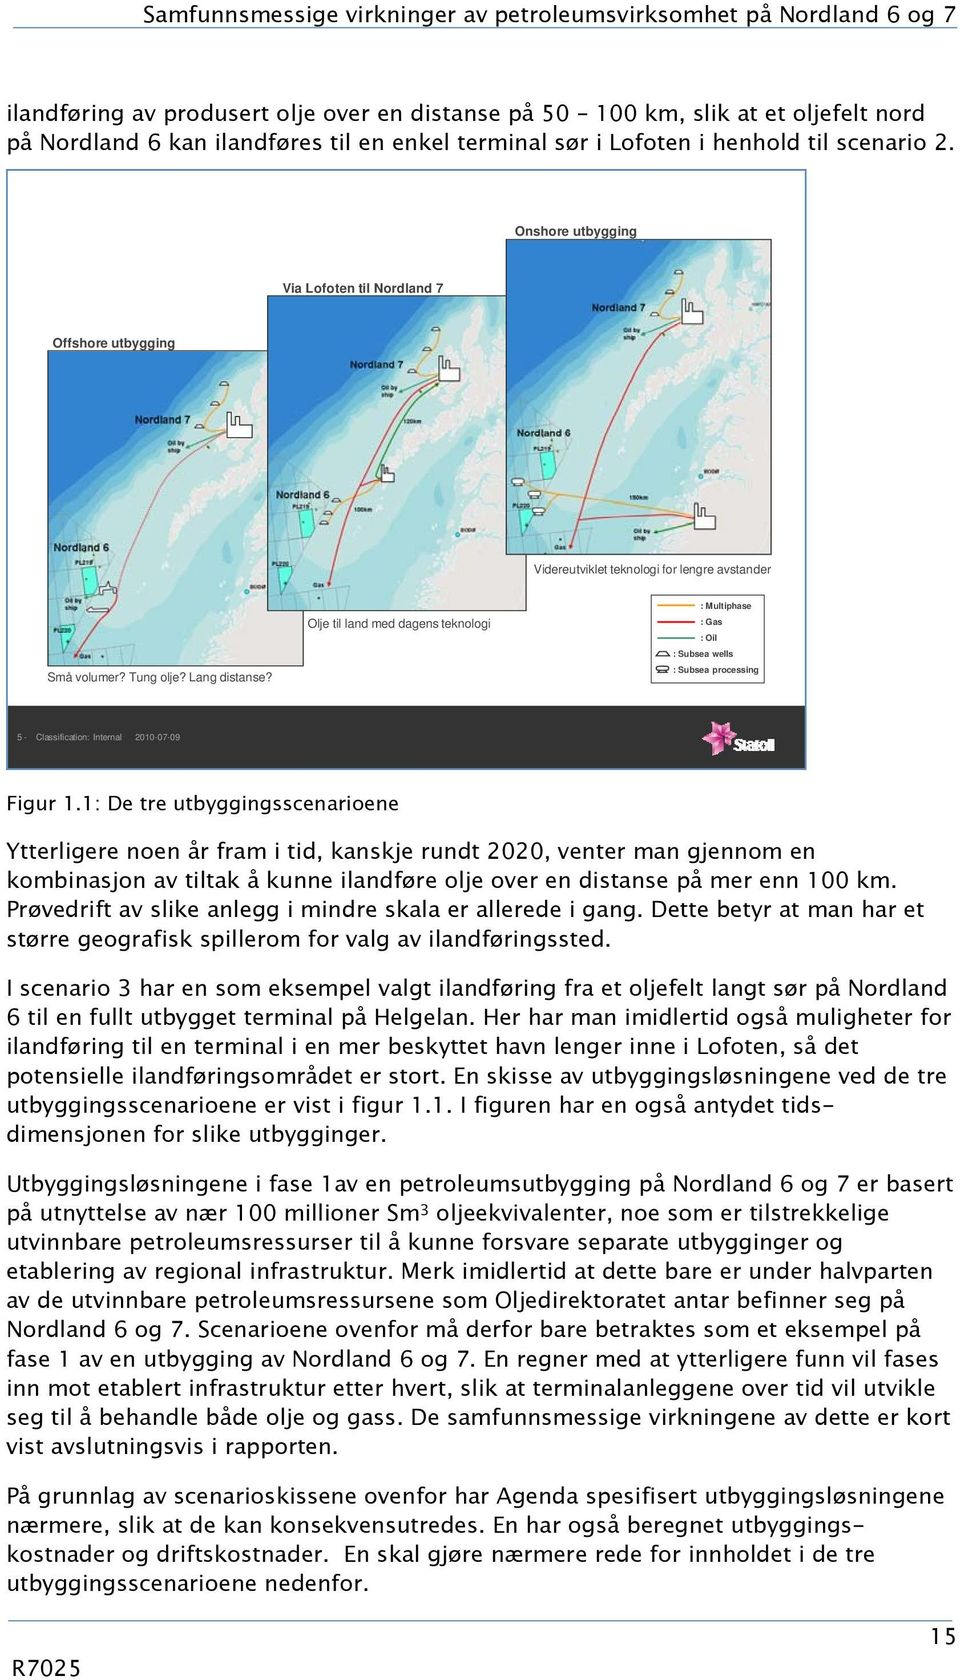 Olje til land med dagens teknologi : Multiphase : Gas : Oil : Subsea wells : Subsea processing 5 - Classification: Internal 2010-07-09 Figur 1.